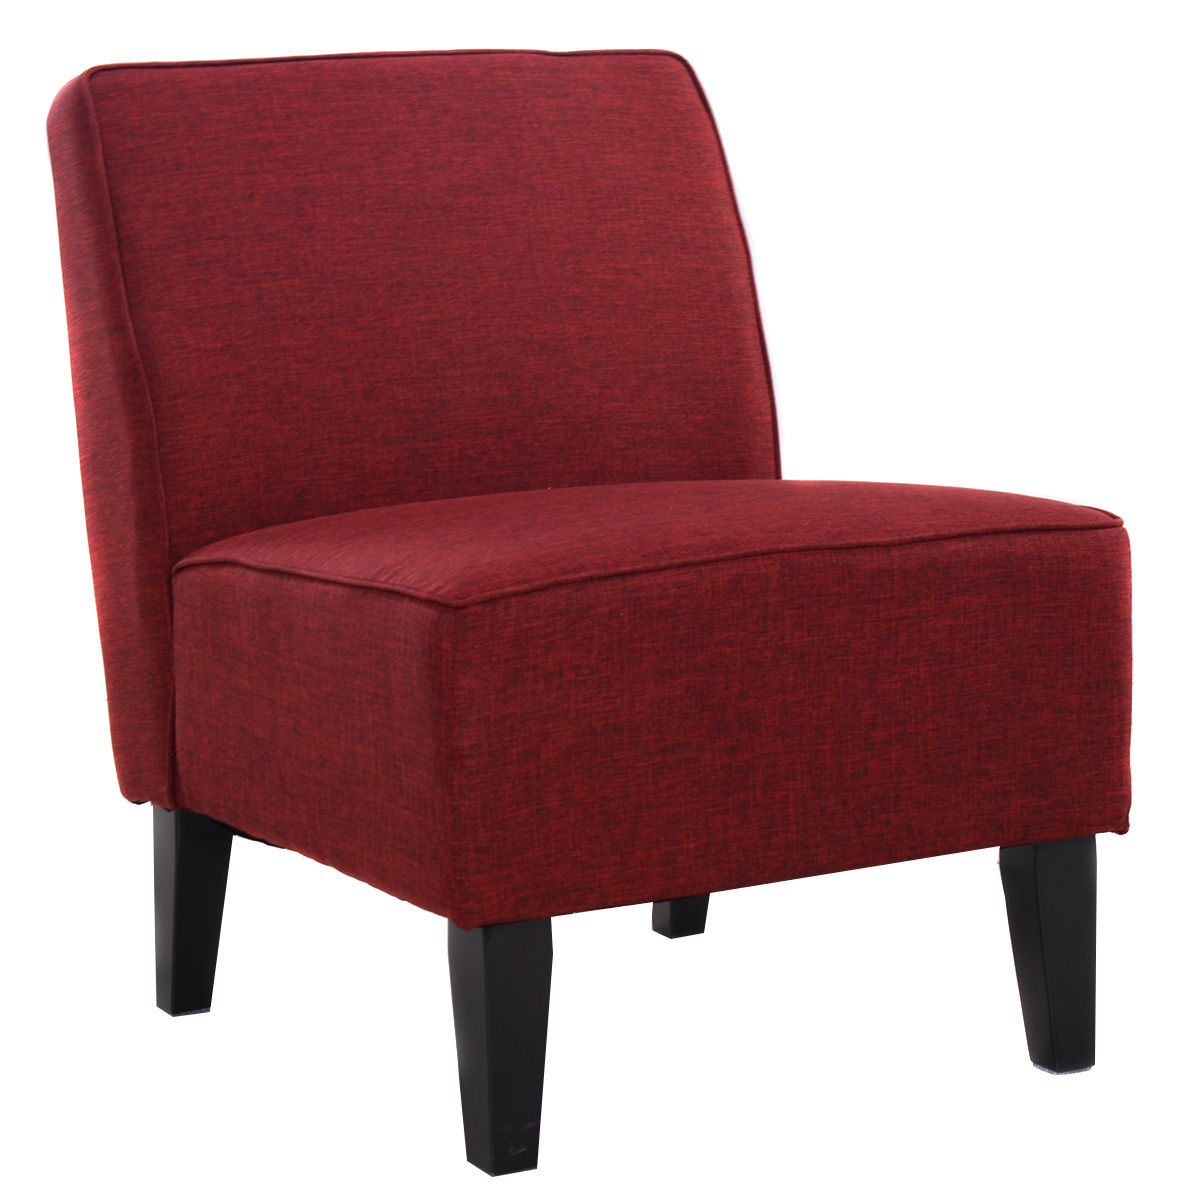 Costway Accent Chair Armless Contemporary Dining Chair Living Room Furniture  Red